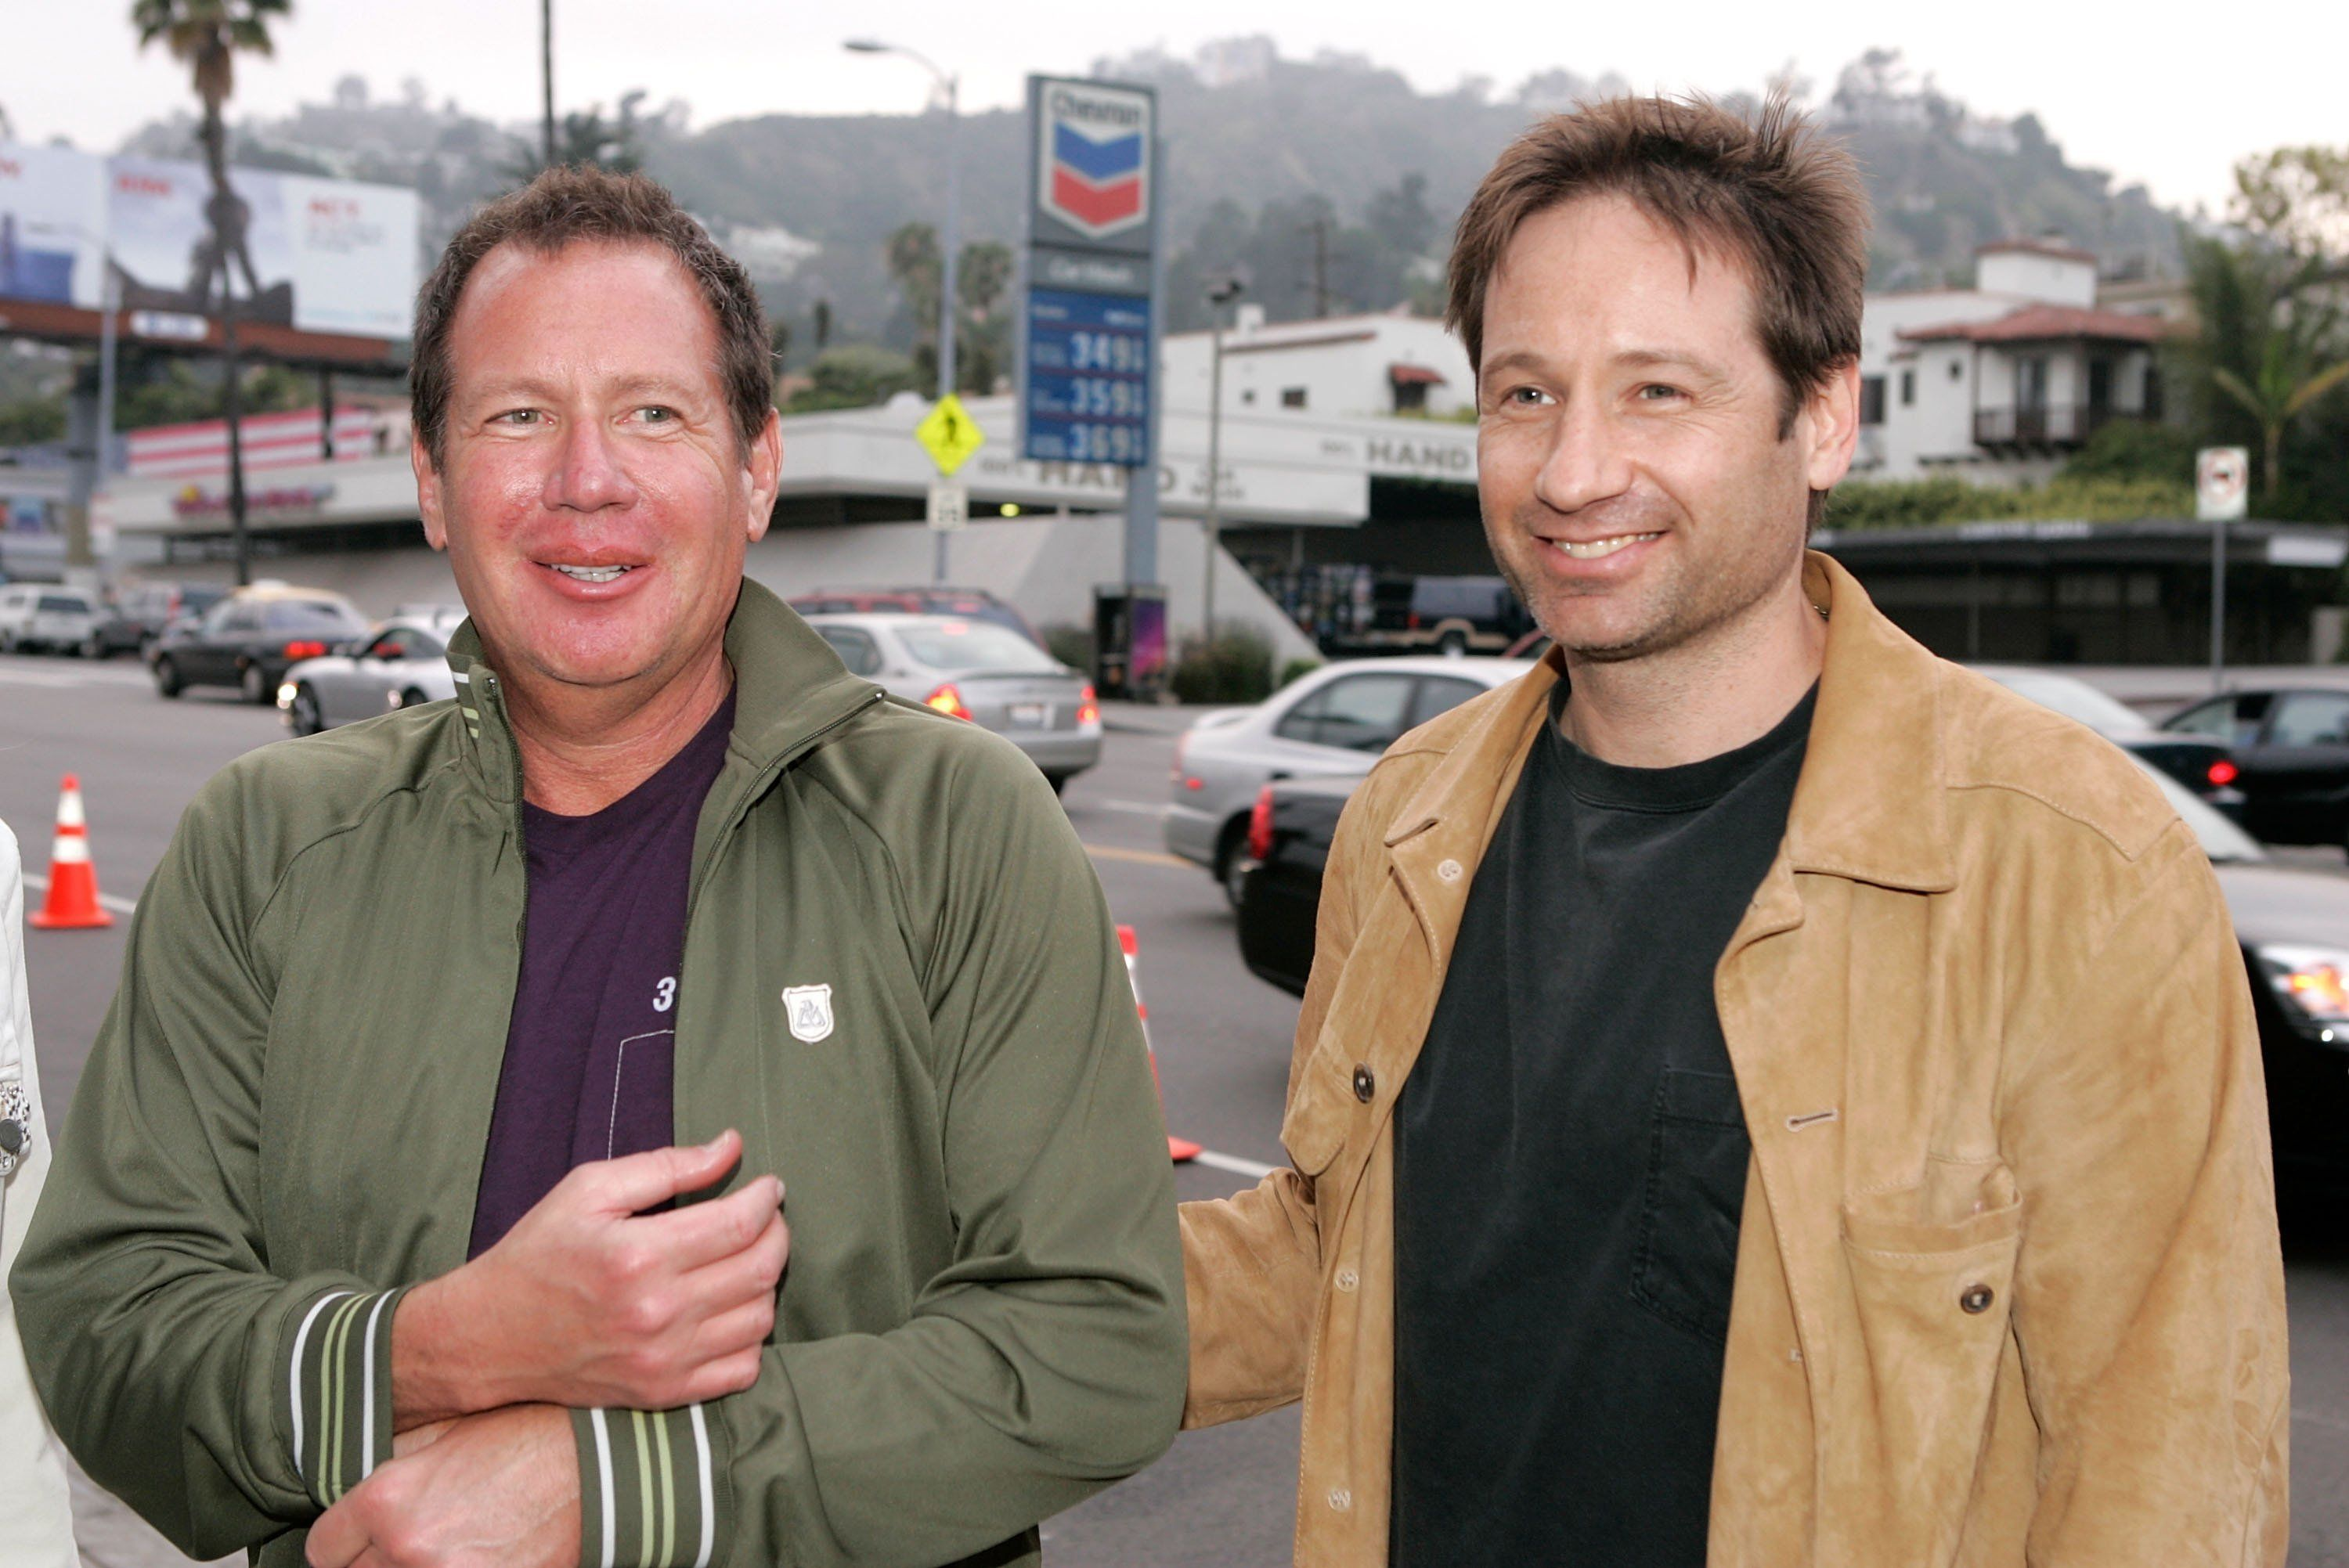 LOS ANGELES, CA - MAY 16:  Comedian Garry Shandling (L) and actor David Duchovny arrive at the Los Angeles Premiere Of 'An Inconvenient Truth' held at the DGA on May 16, 2006 in Los Angeles, California.  (Photo by Kevin Winter/Getty Images)